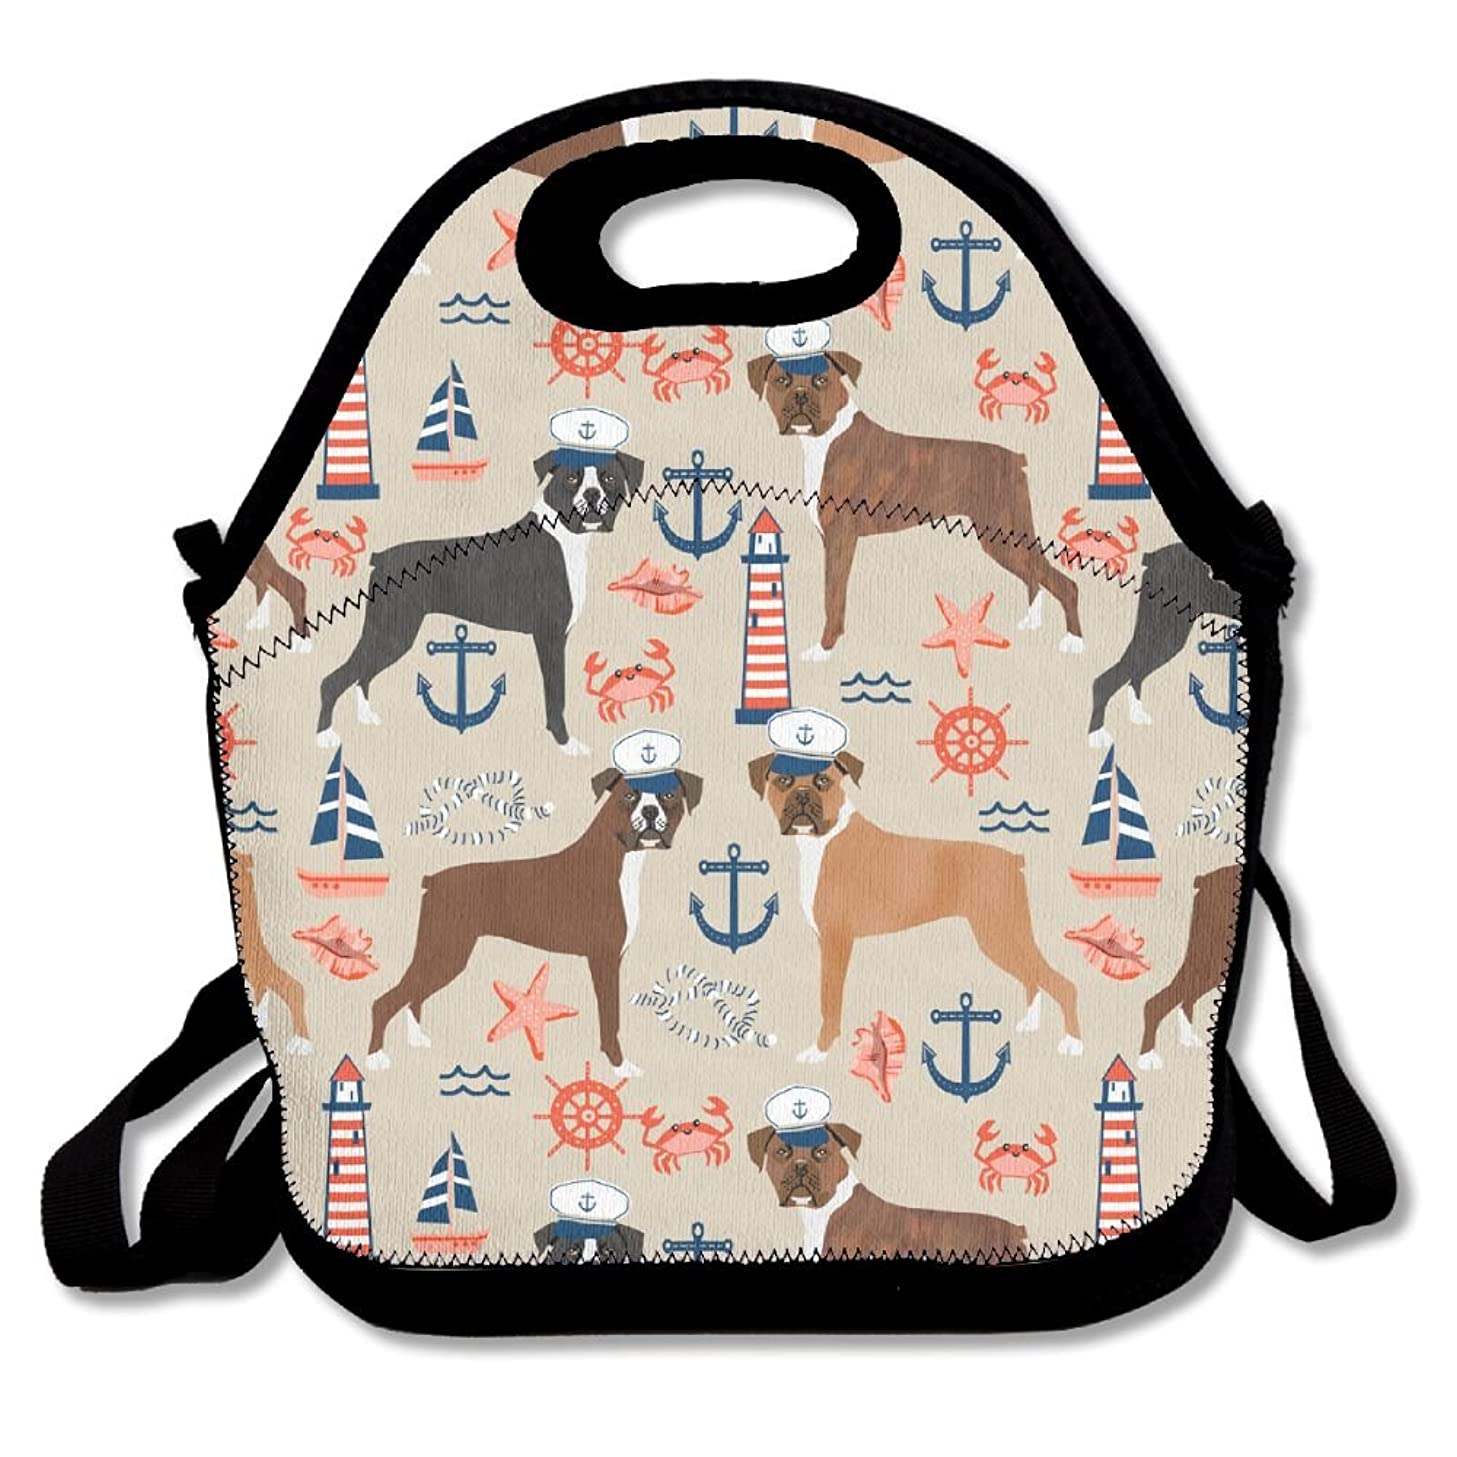 Nautical Anchor Tropical Boxer Dogs Insulated Lunch Bag Picnic Lunch Tote For Work, Picnic, Travelling